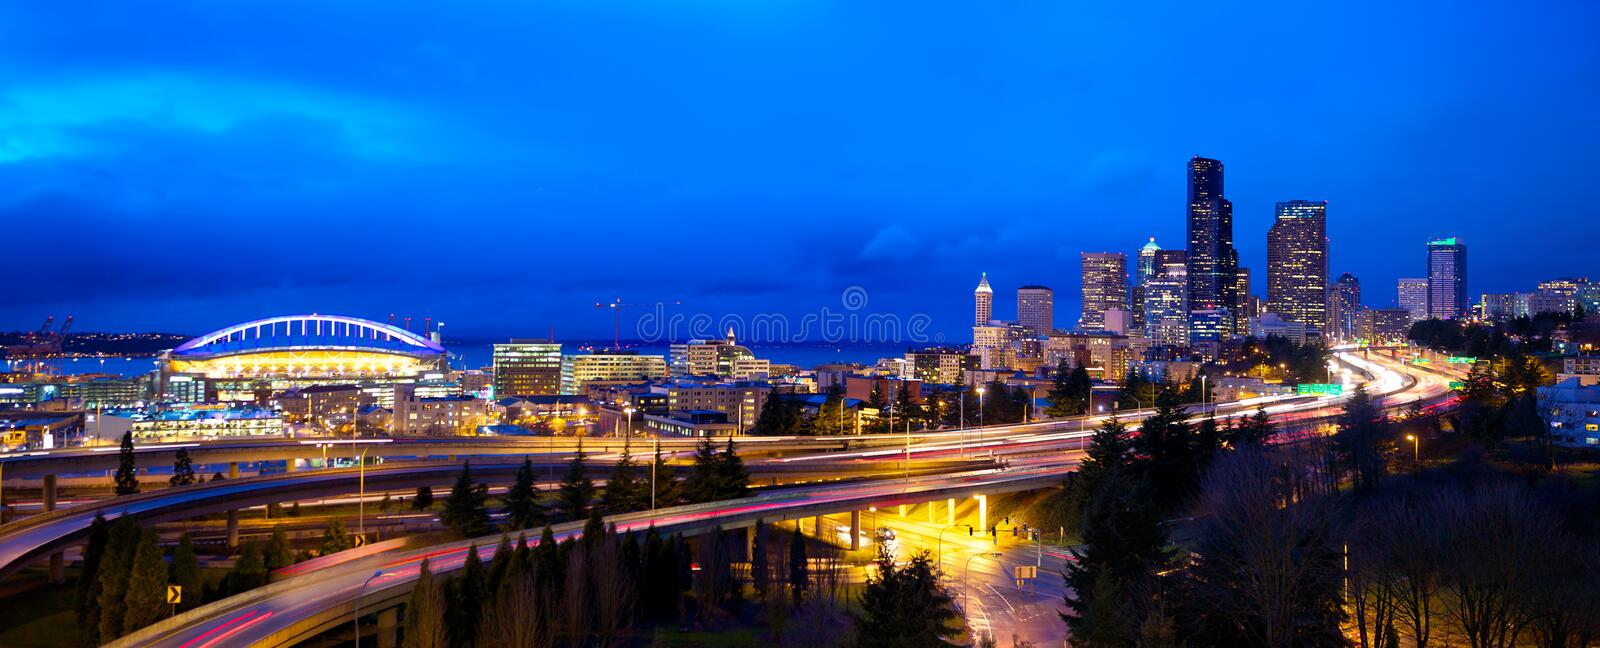 Panorama de Seattle fotos de stock royalty free